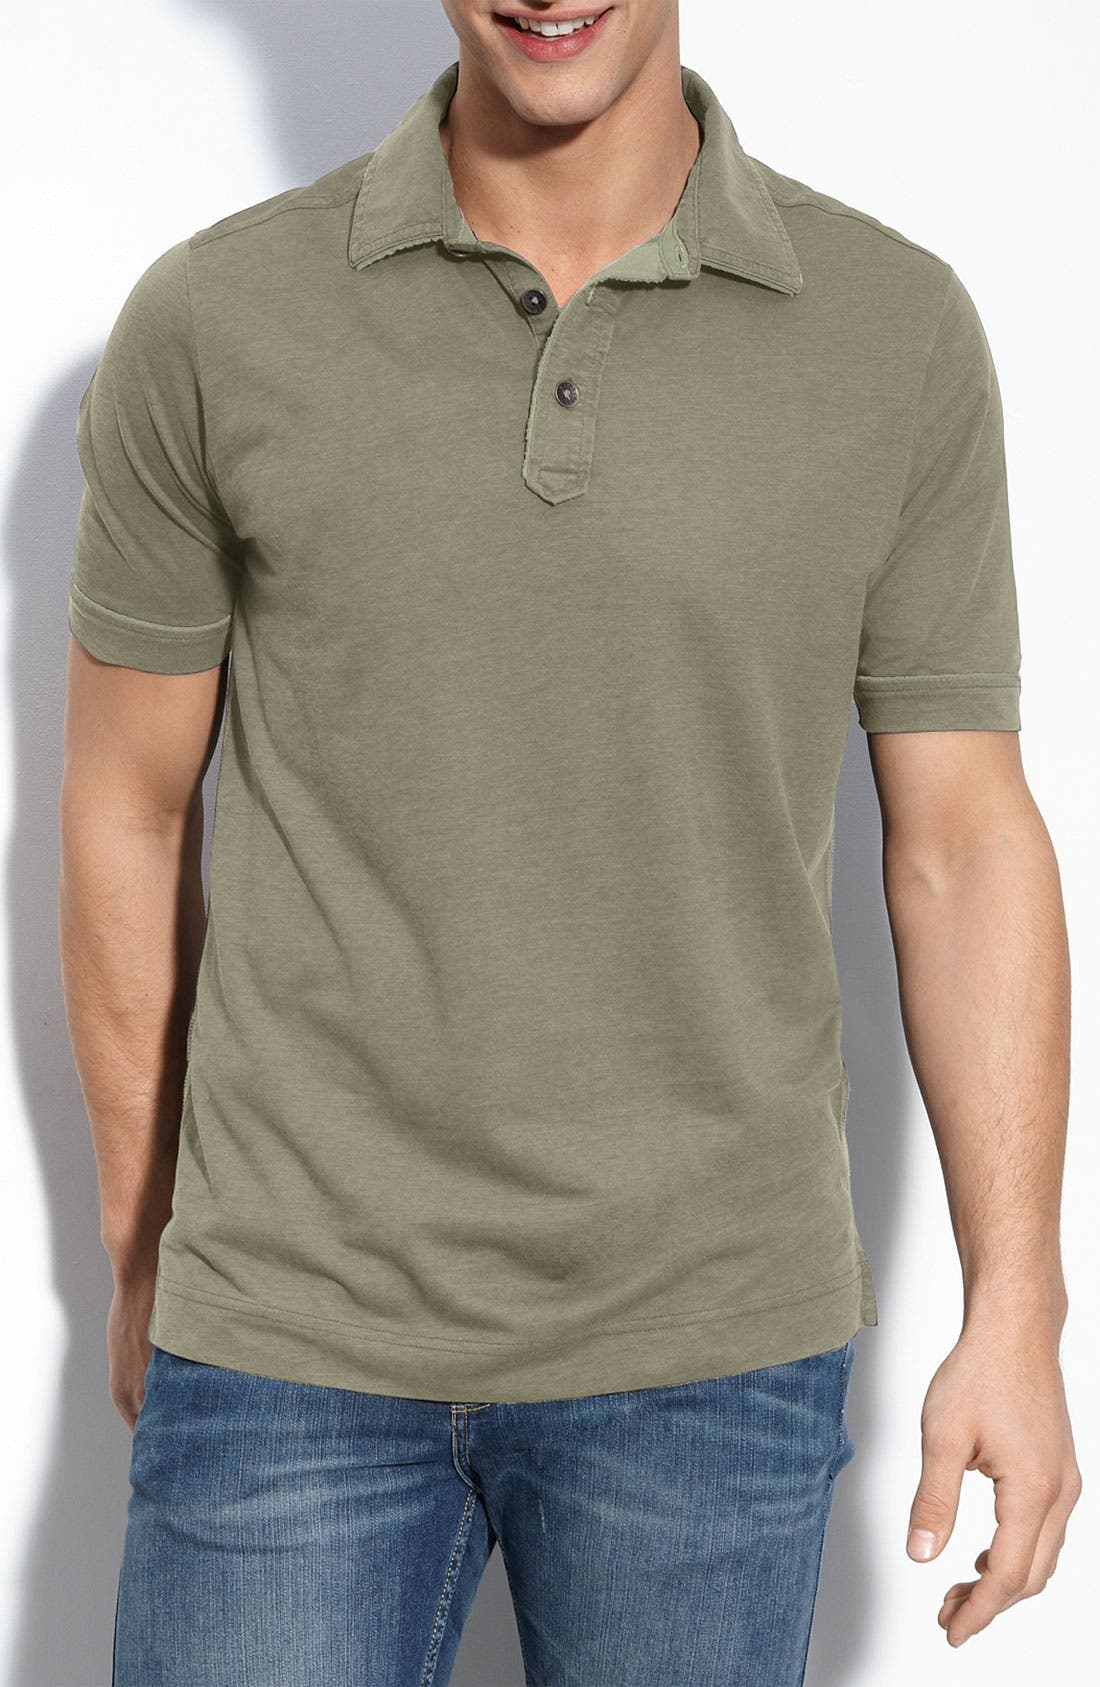 Alternate Image 1 Selected - Tommy Bahama Denim 'Fray Day' Polo